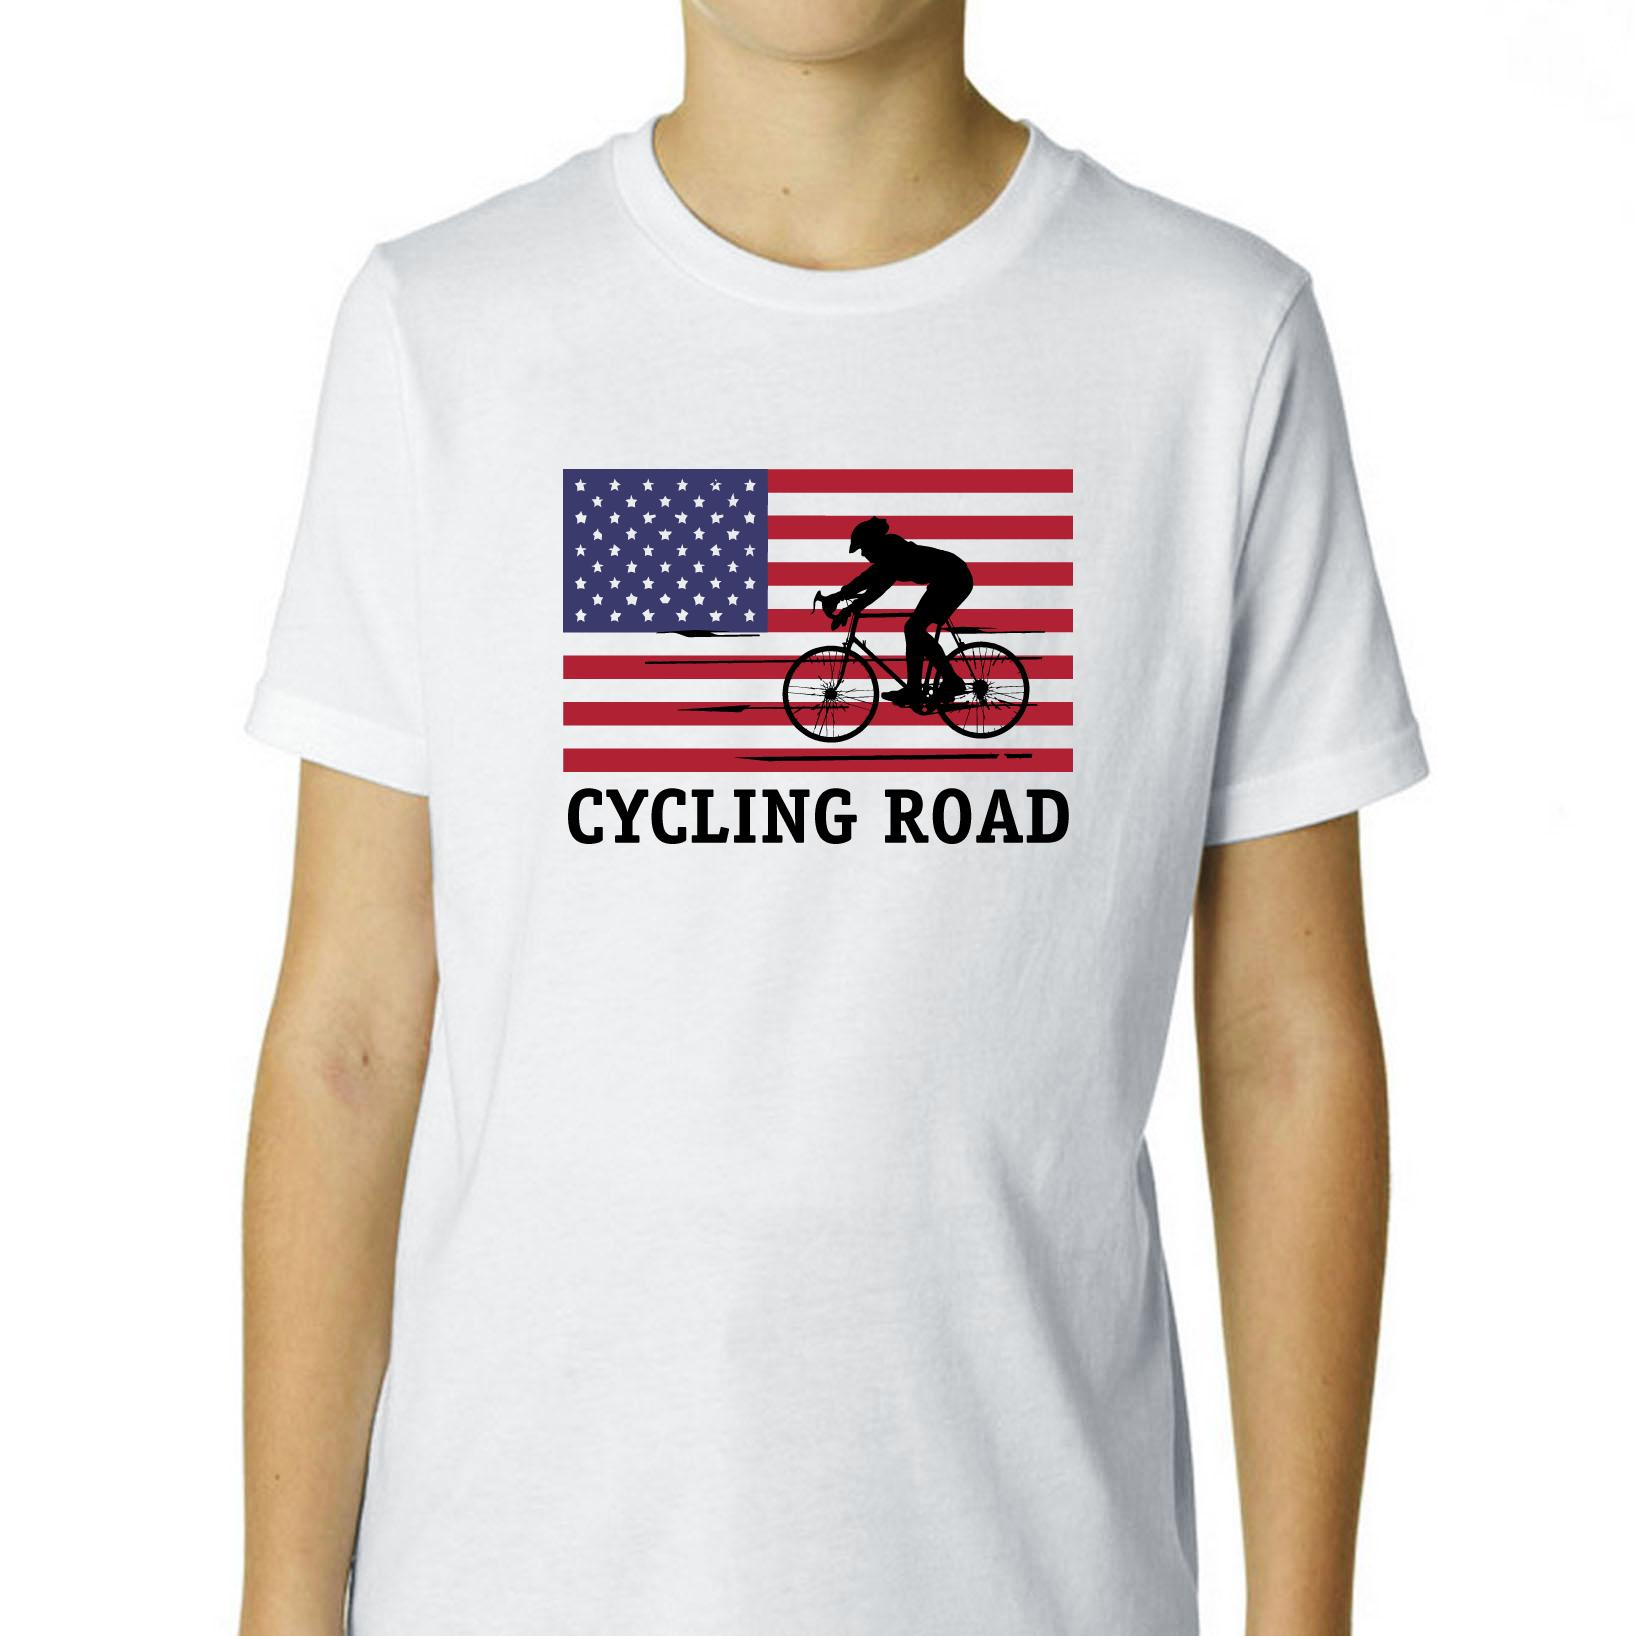 USA Olympic - Cycling Road - Flag - Silhouette Boy's Cotton Youth T-Shirt